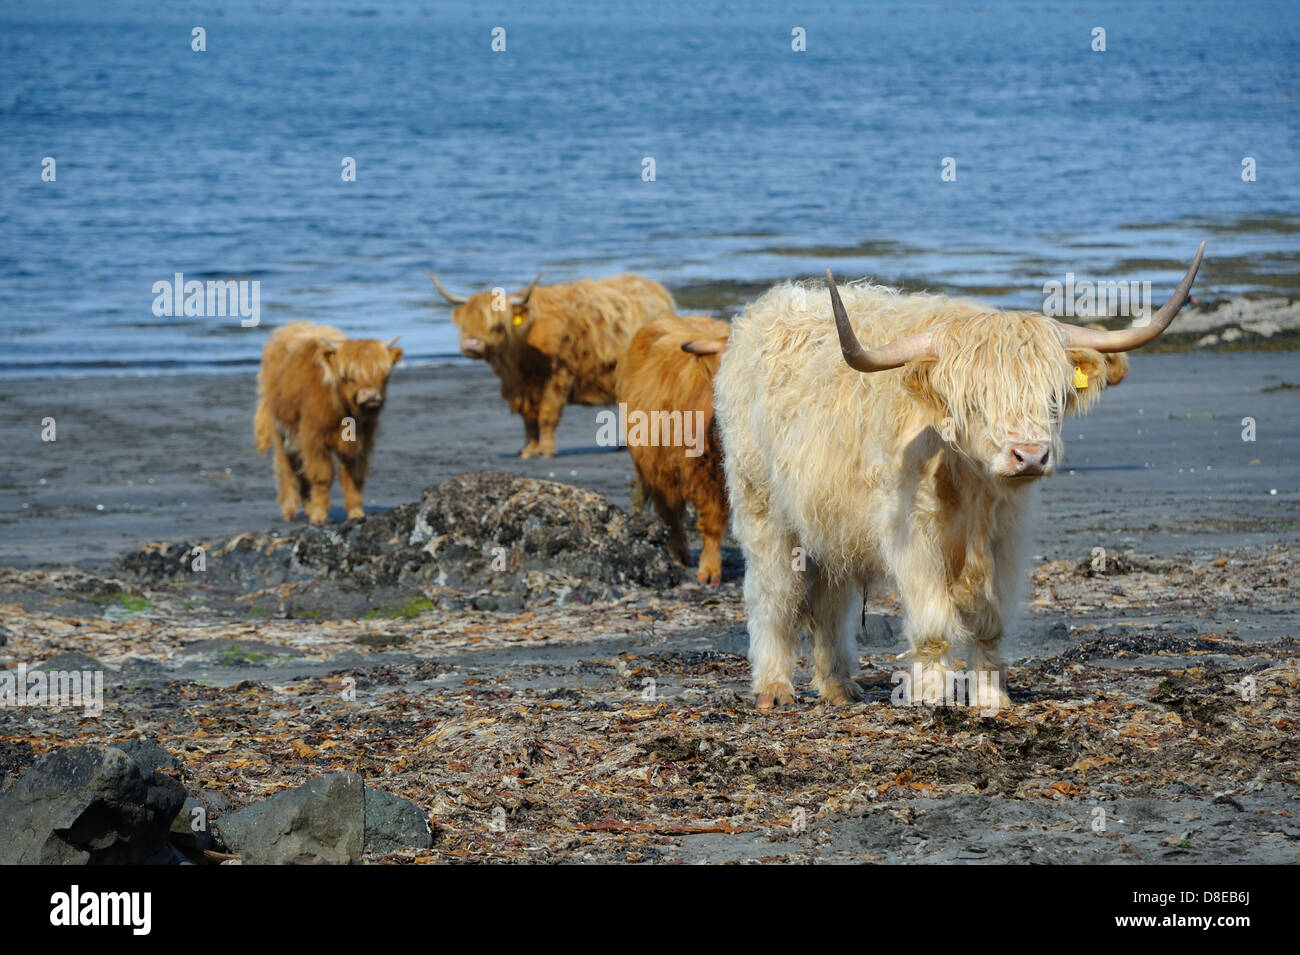 A blonde coloured highland cow walking across a seaweed covered sandy beach in a remote part of the scottish highlands. - Stock Image